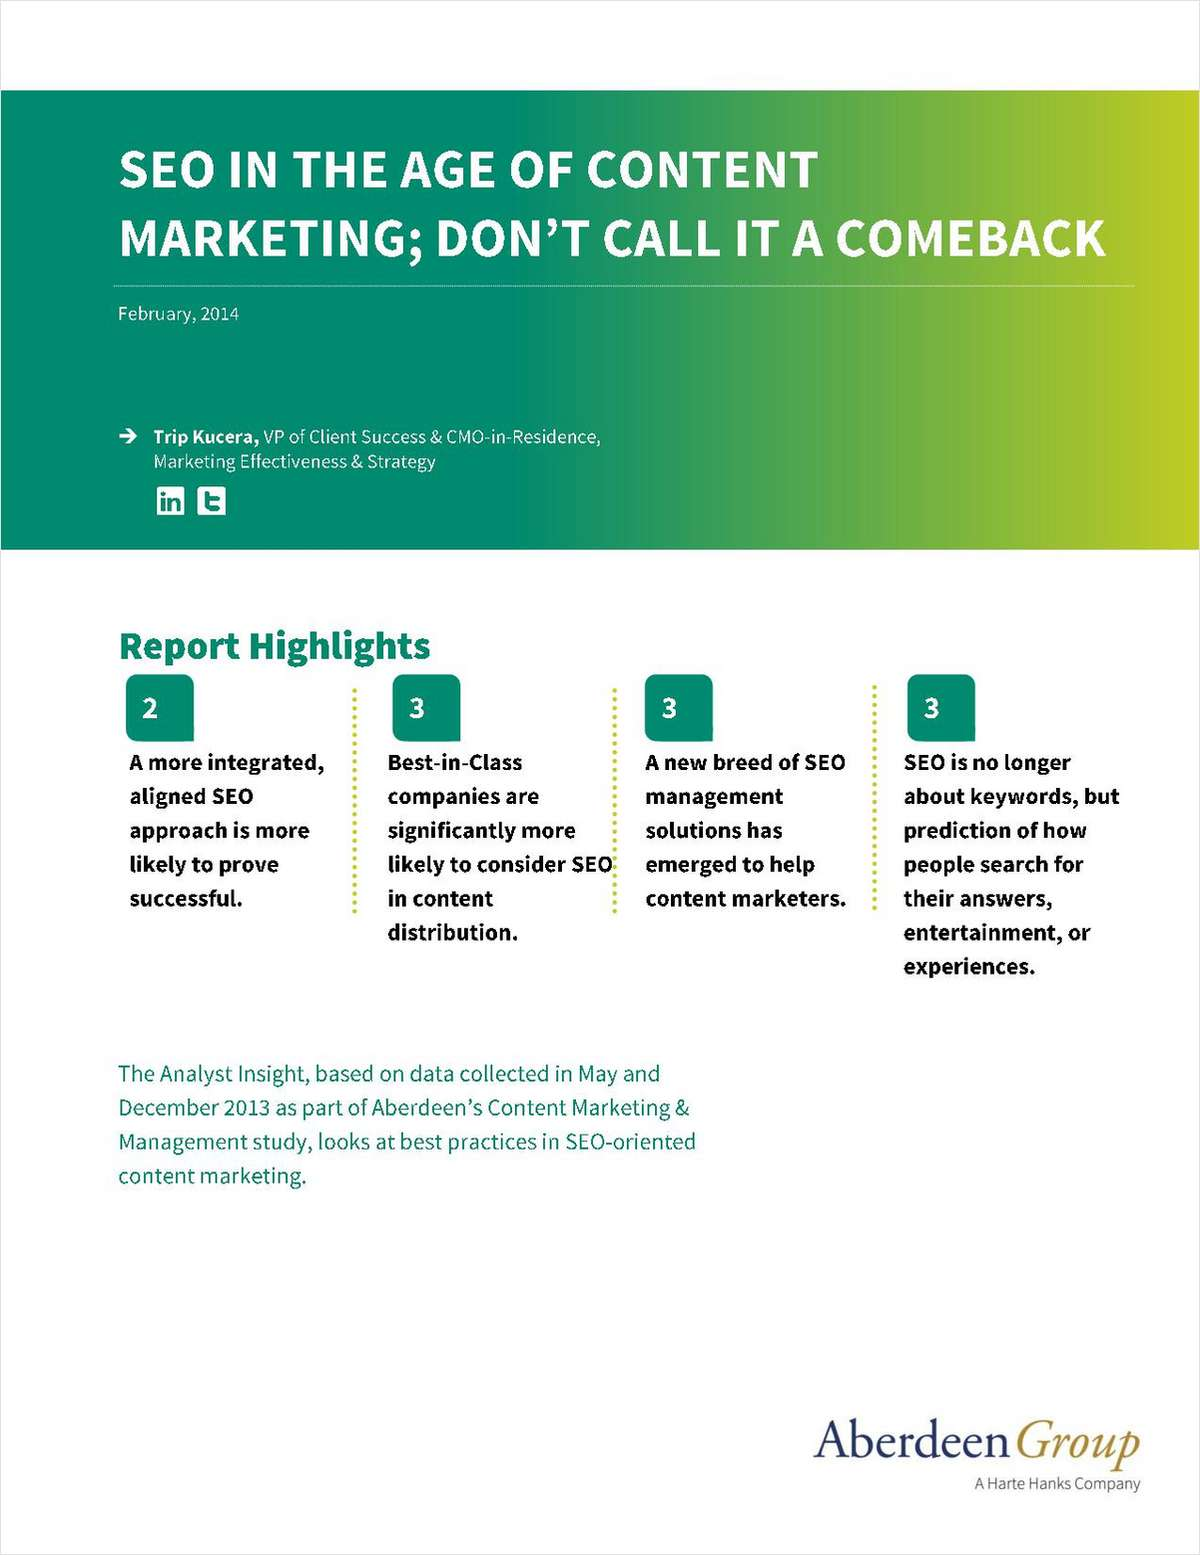 SEO Management in the Age of Content Marketing: Don't Call it a Comeback